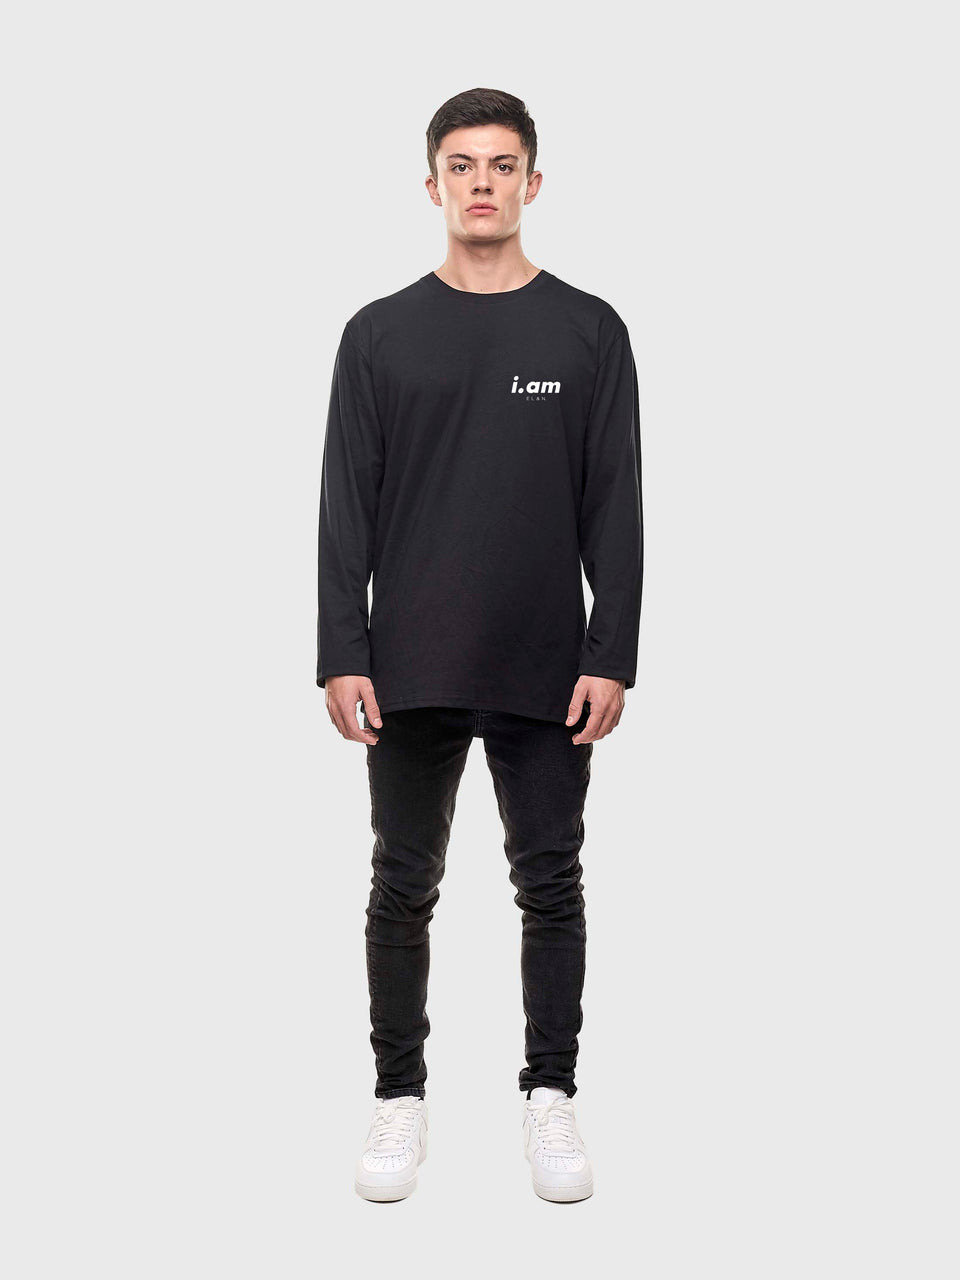 Showing not telling -  Black - unisex Long sleeve T